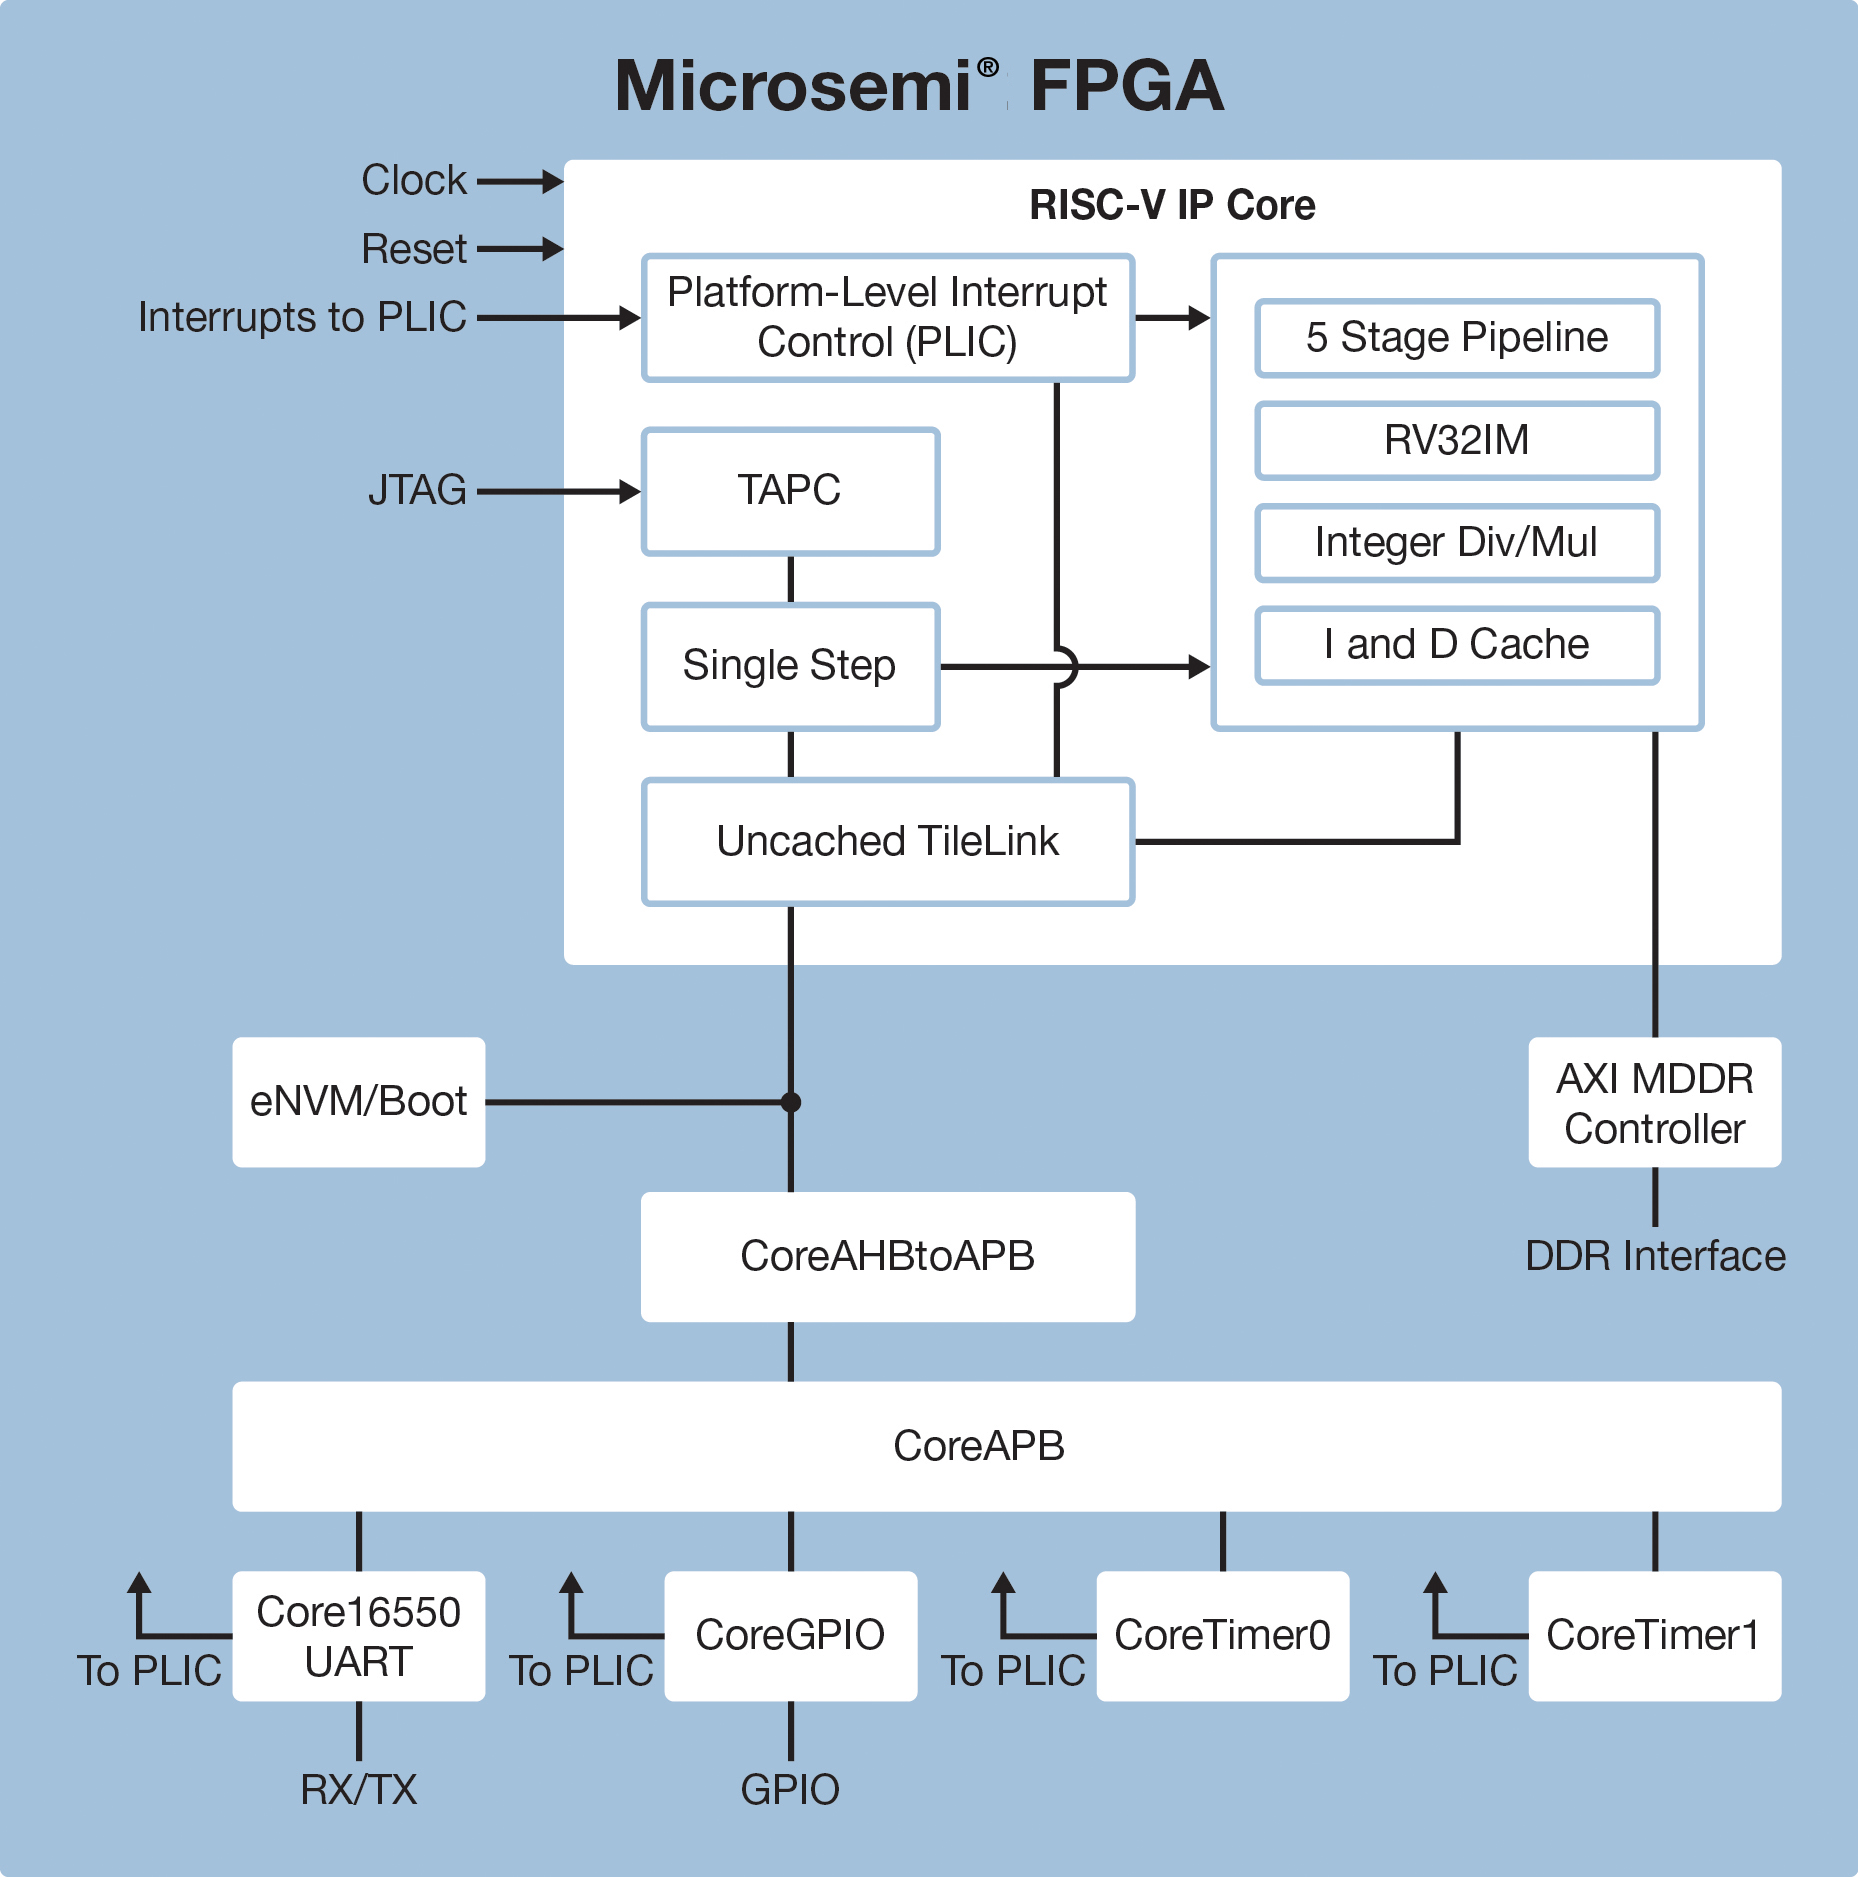 RISC-V IP Core, RISC-V Processor